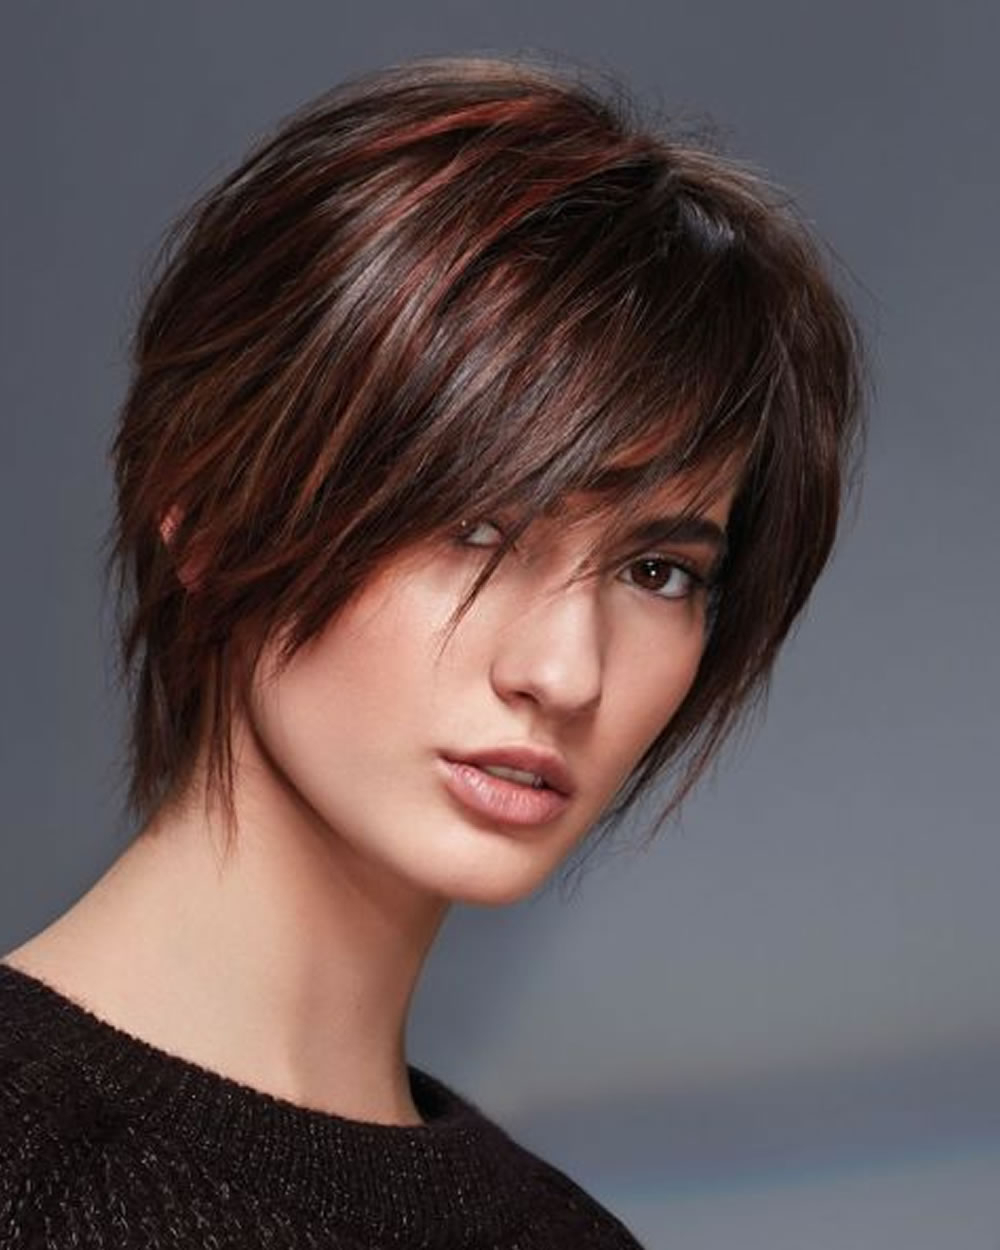 Top 20 Matchless Short Haircuts For Women With Round Faces 2018 2019 Throughout Women Short Haircuts For Round Faces (View 14 of 25)